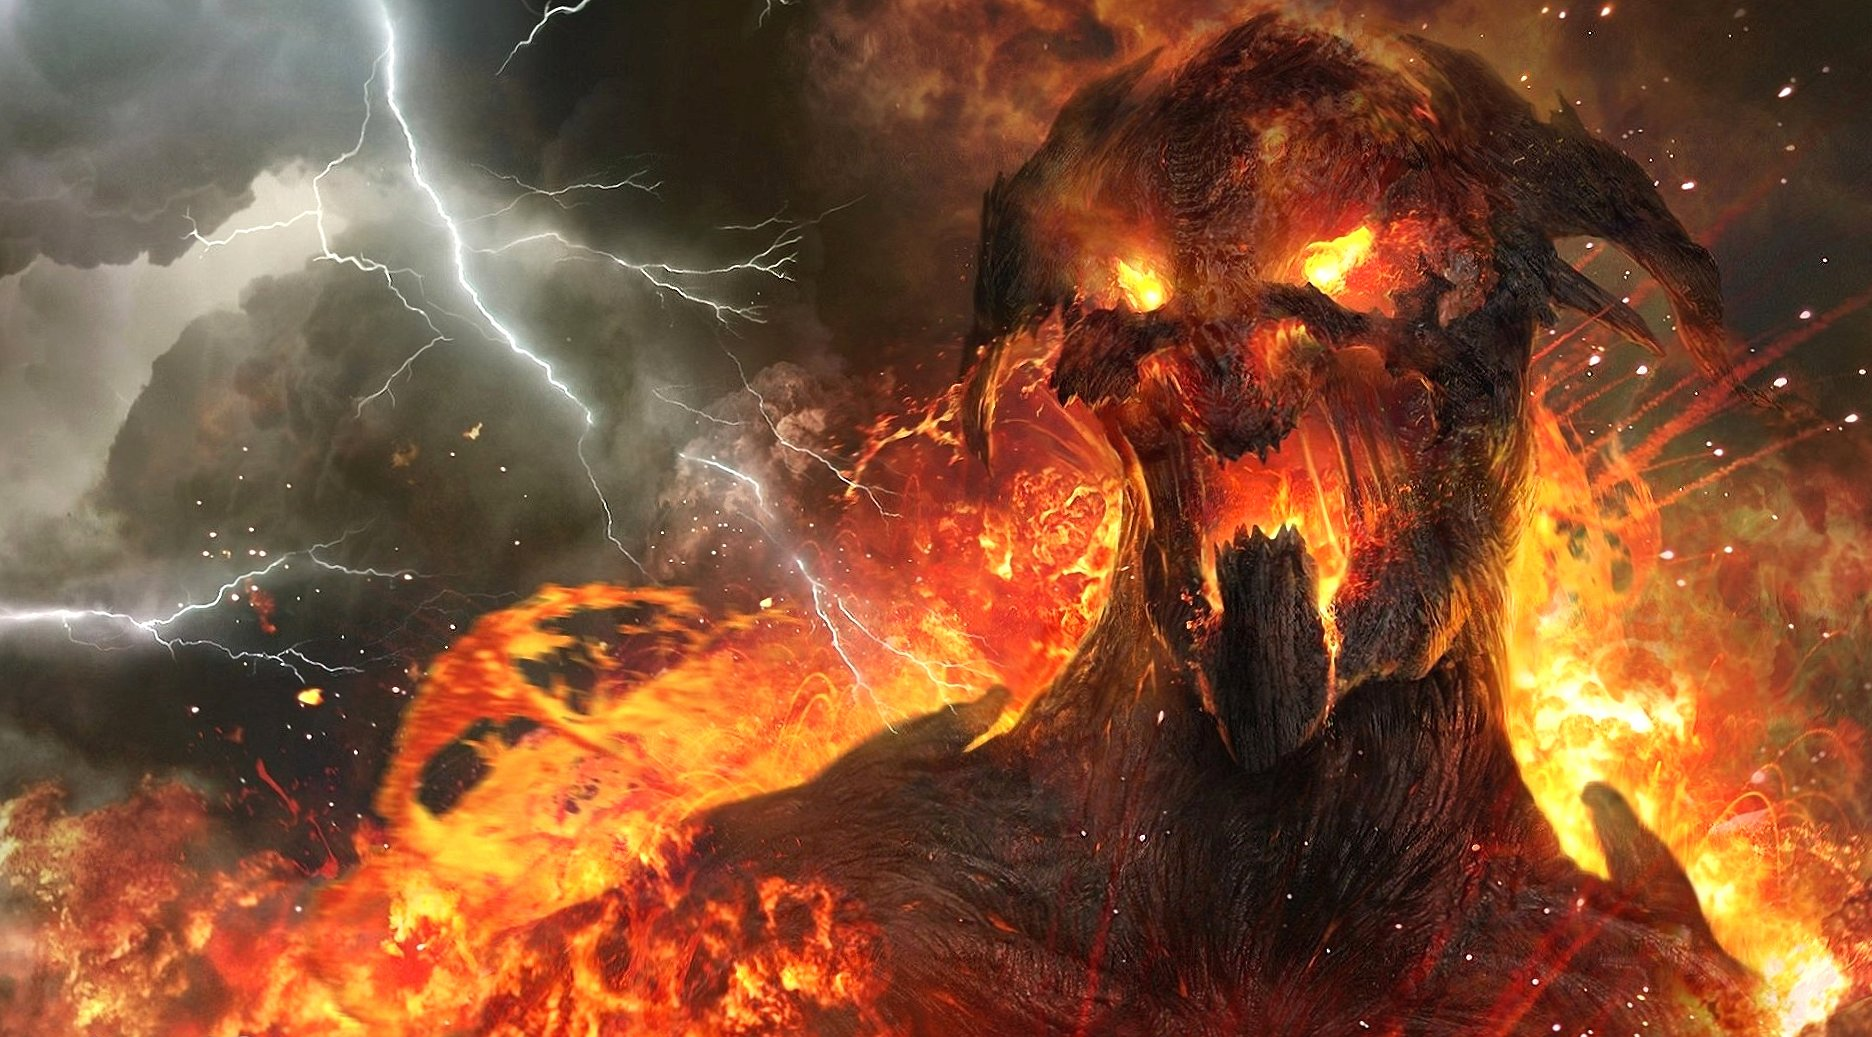 Hot lava creature wallpapers HD quality